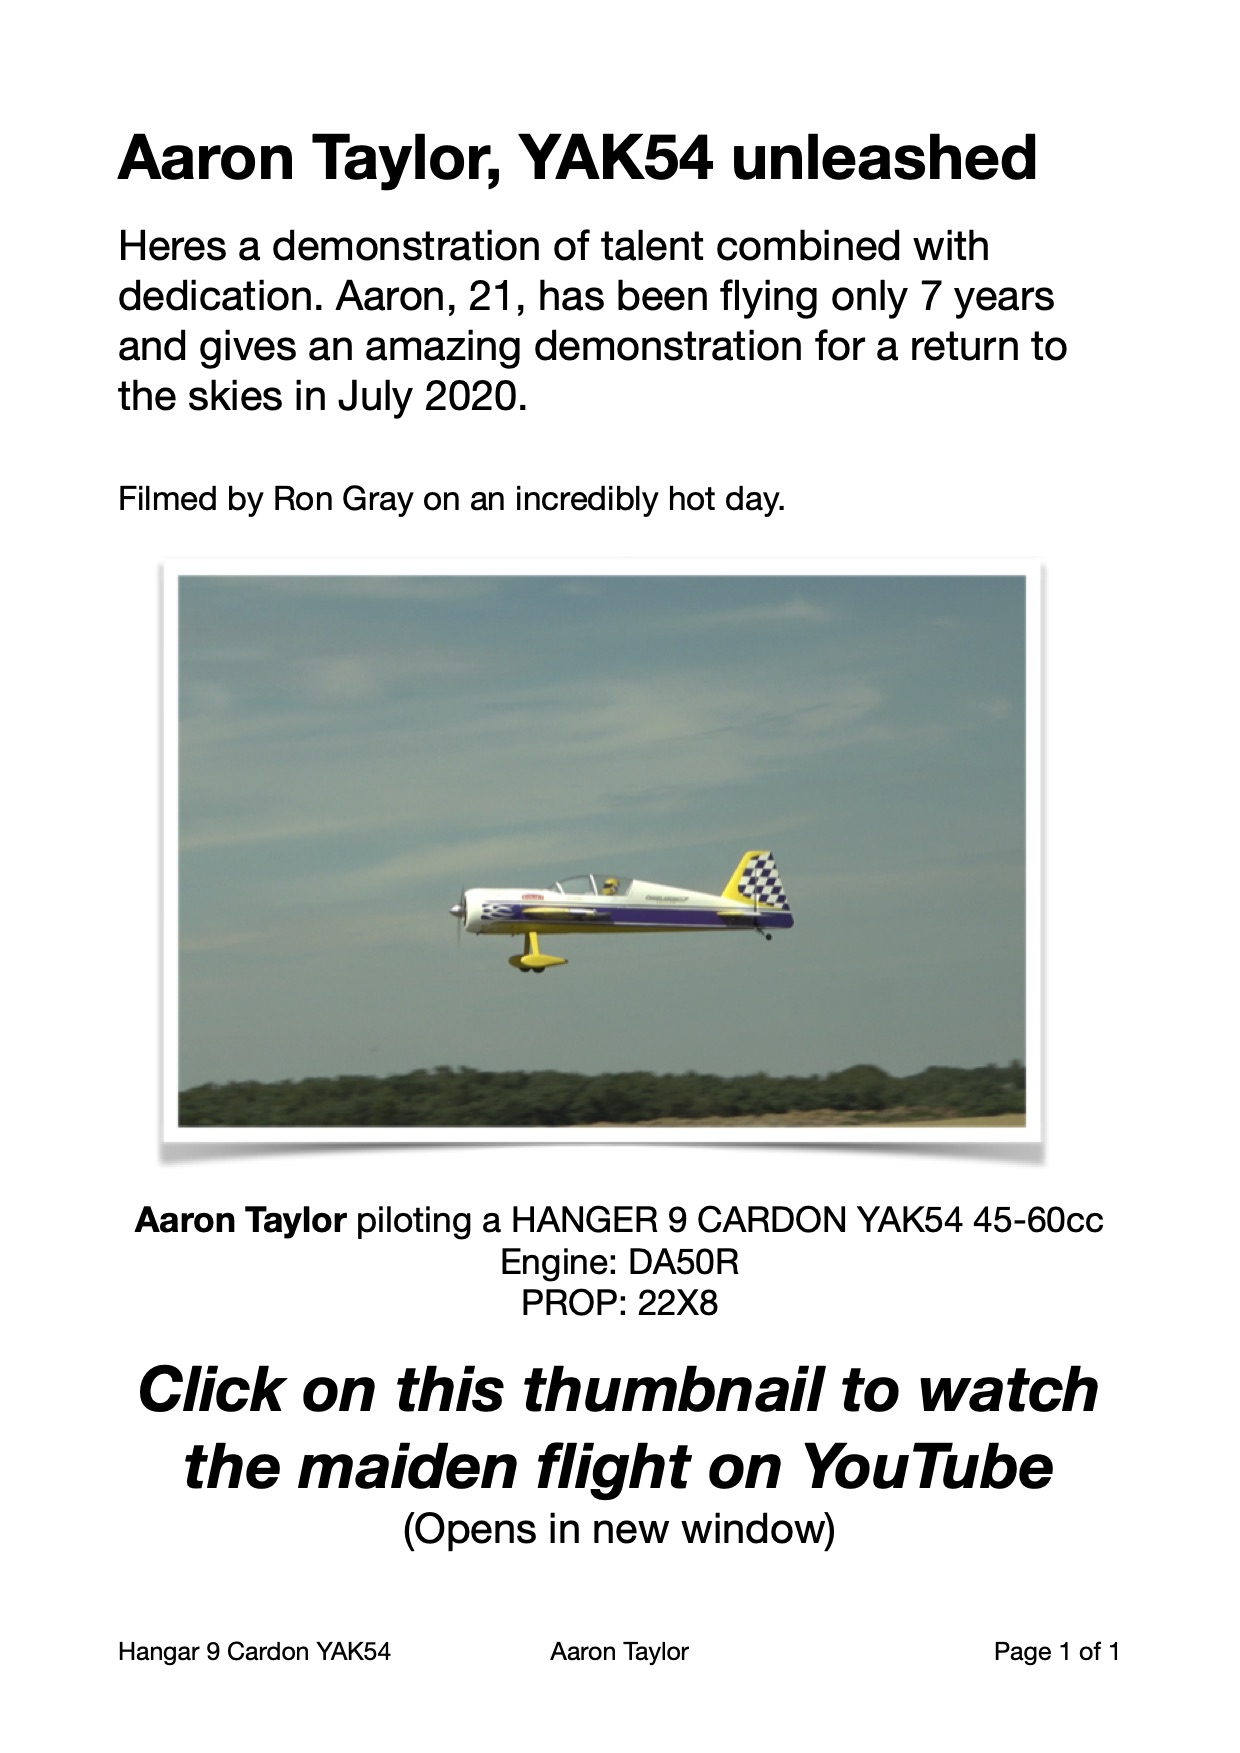 Aaron Taylor flying his Hangar 9 Cardon YAK54, on YouTube